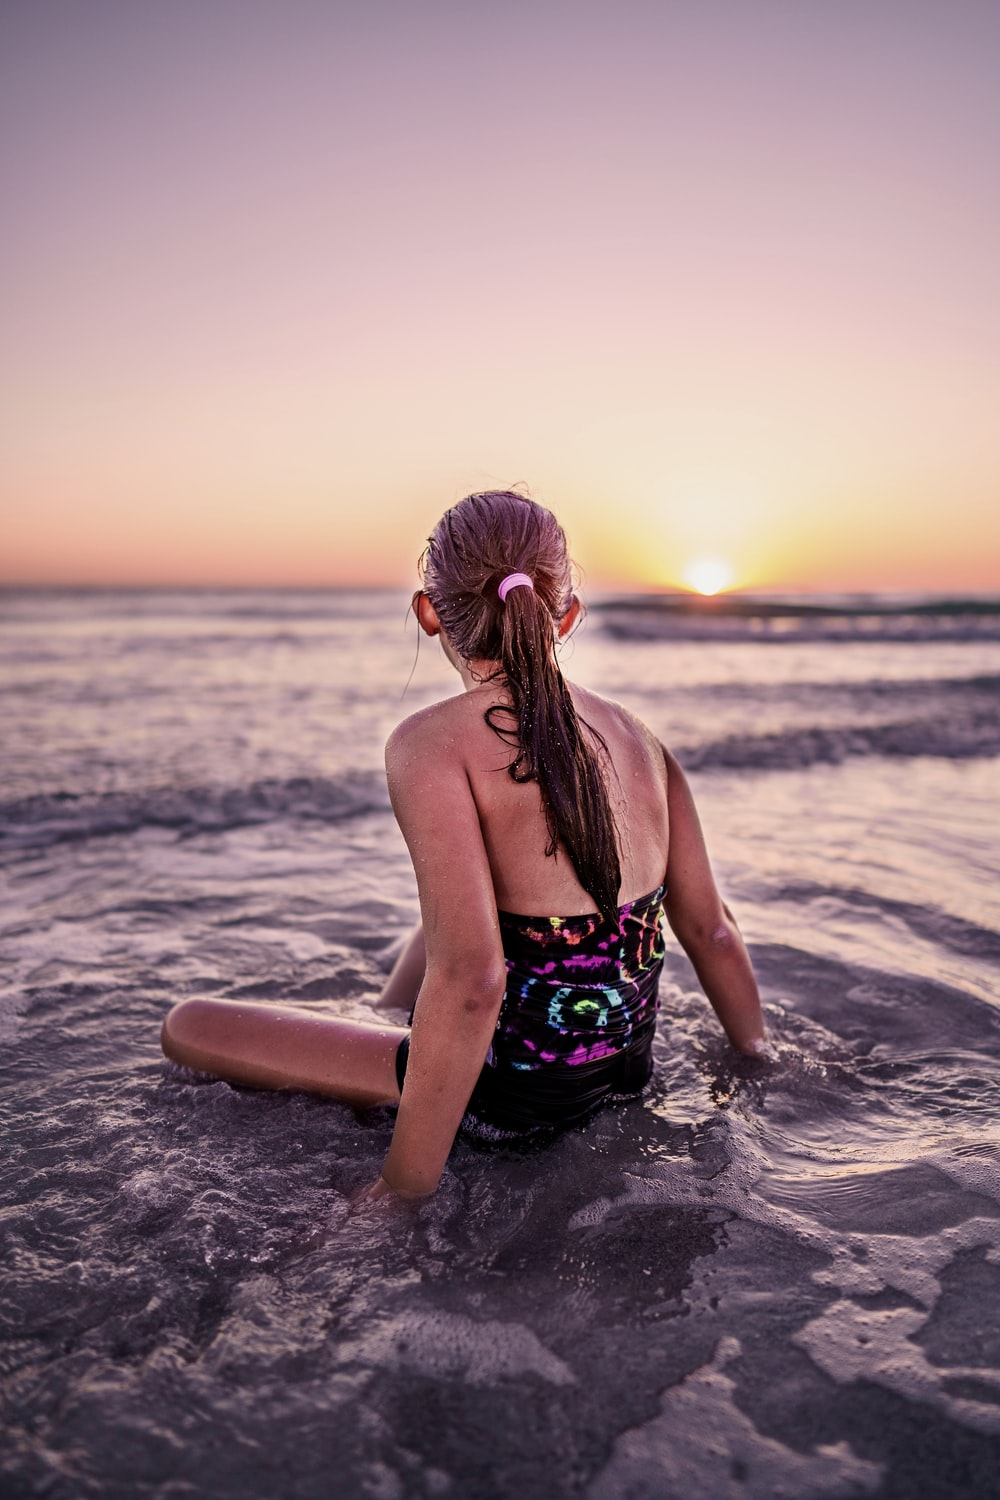 woman in green and black floral bikini sitting on beach during sunset